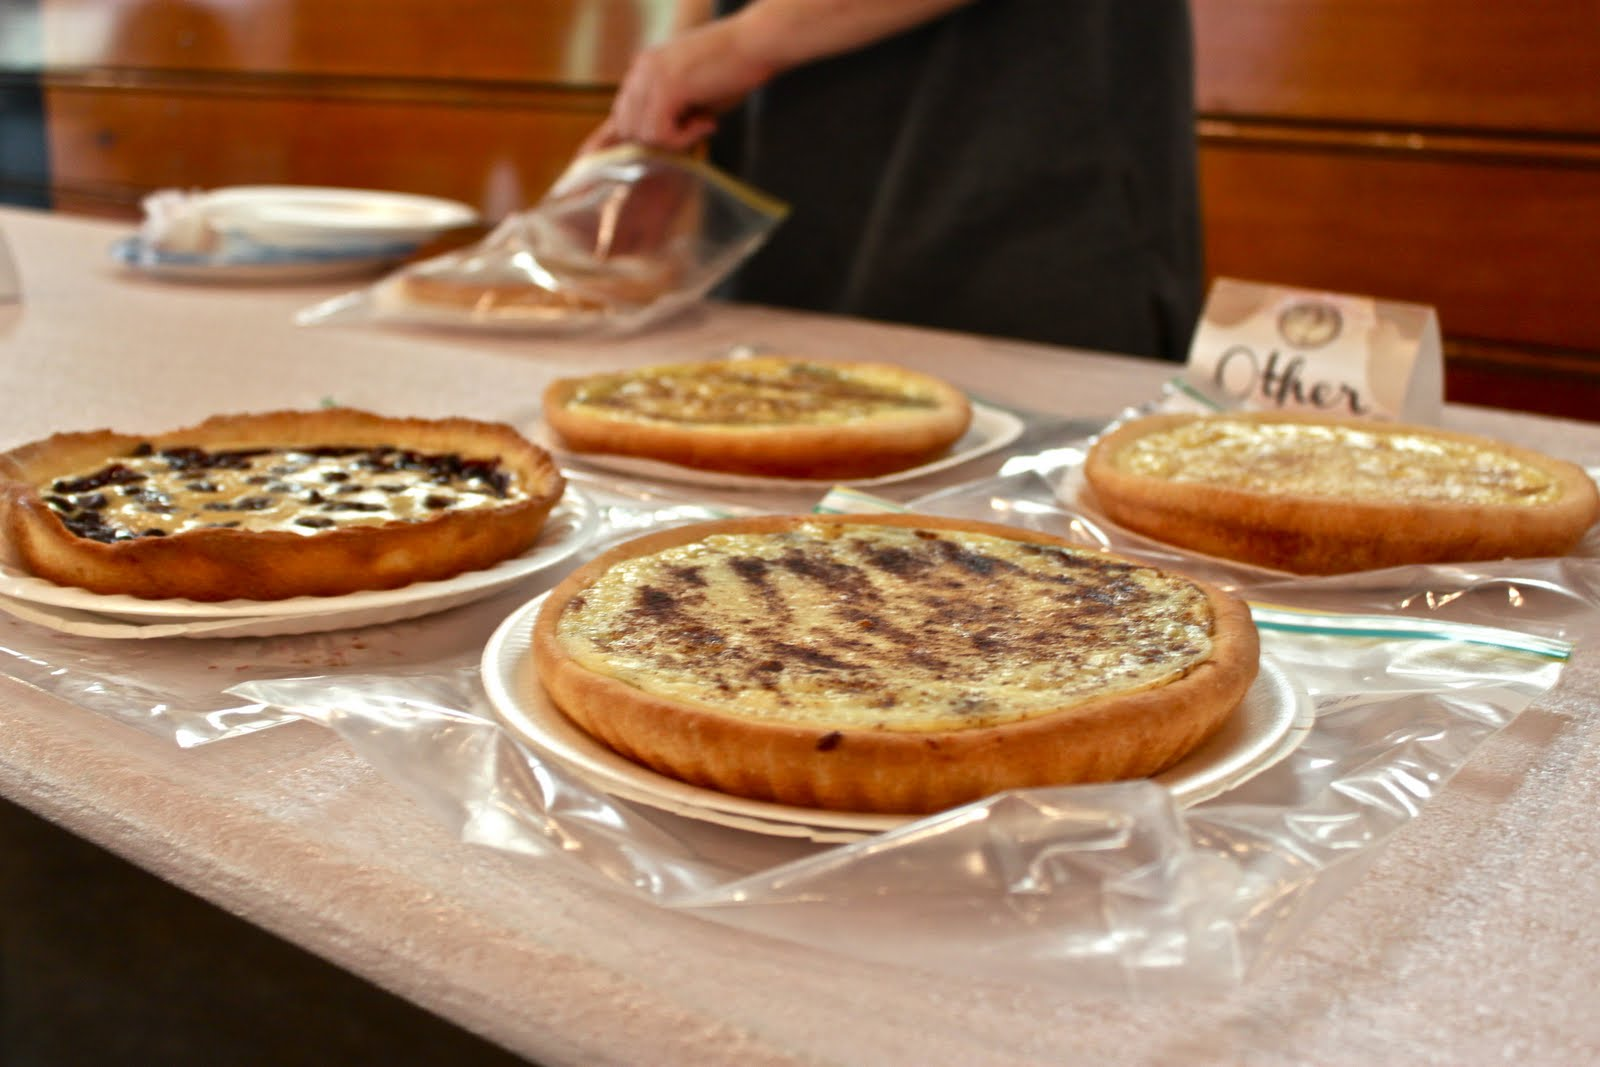 Where & how to find coveted kuchen - The Pinke Post